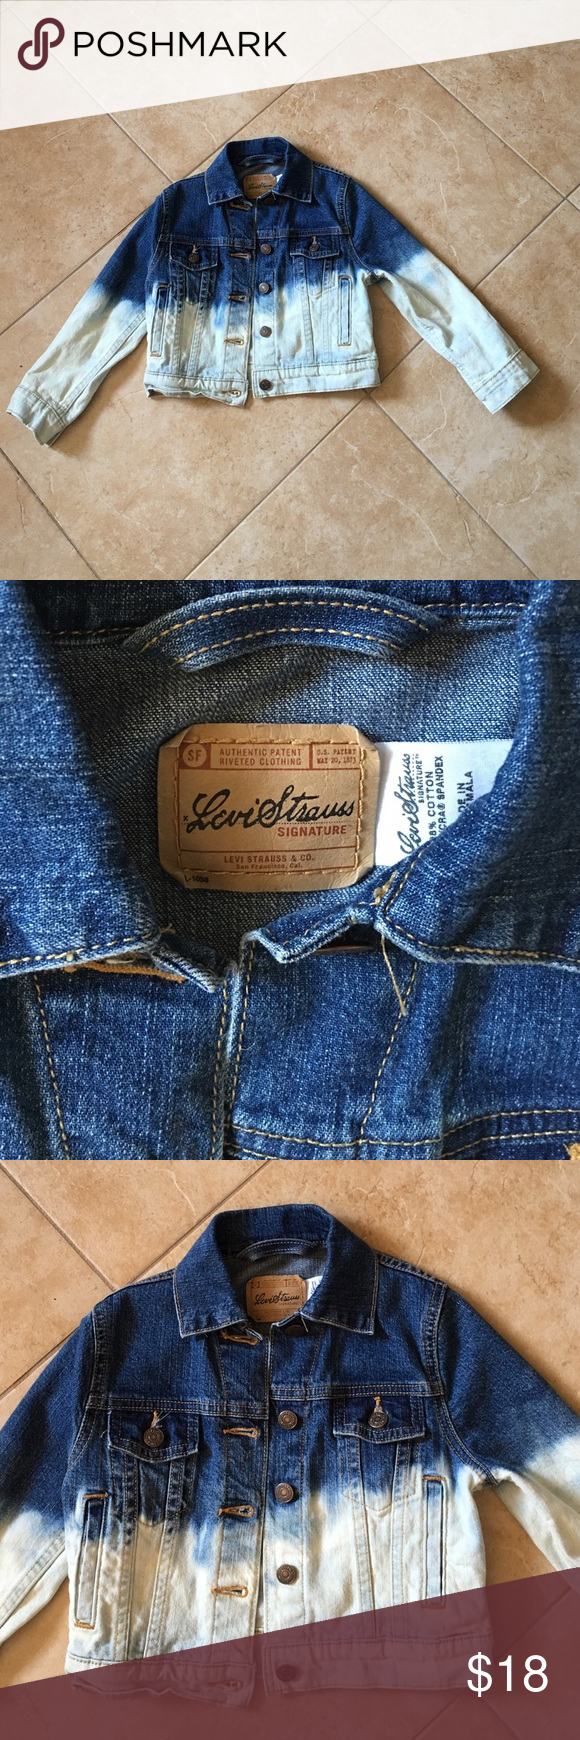 Levi's Jean Jacket Dip Dye Childrens Levi Strauss denim dip dye Jean jacket in size small. Excellent condition. Gently used. Size children small tits approximate 5/6 girls, 4/5 boys. Levi's Jackets & Coats Jean Jackets